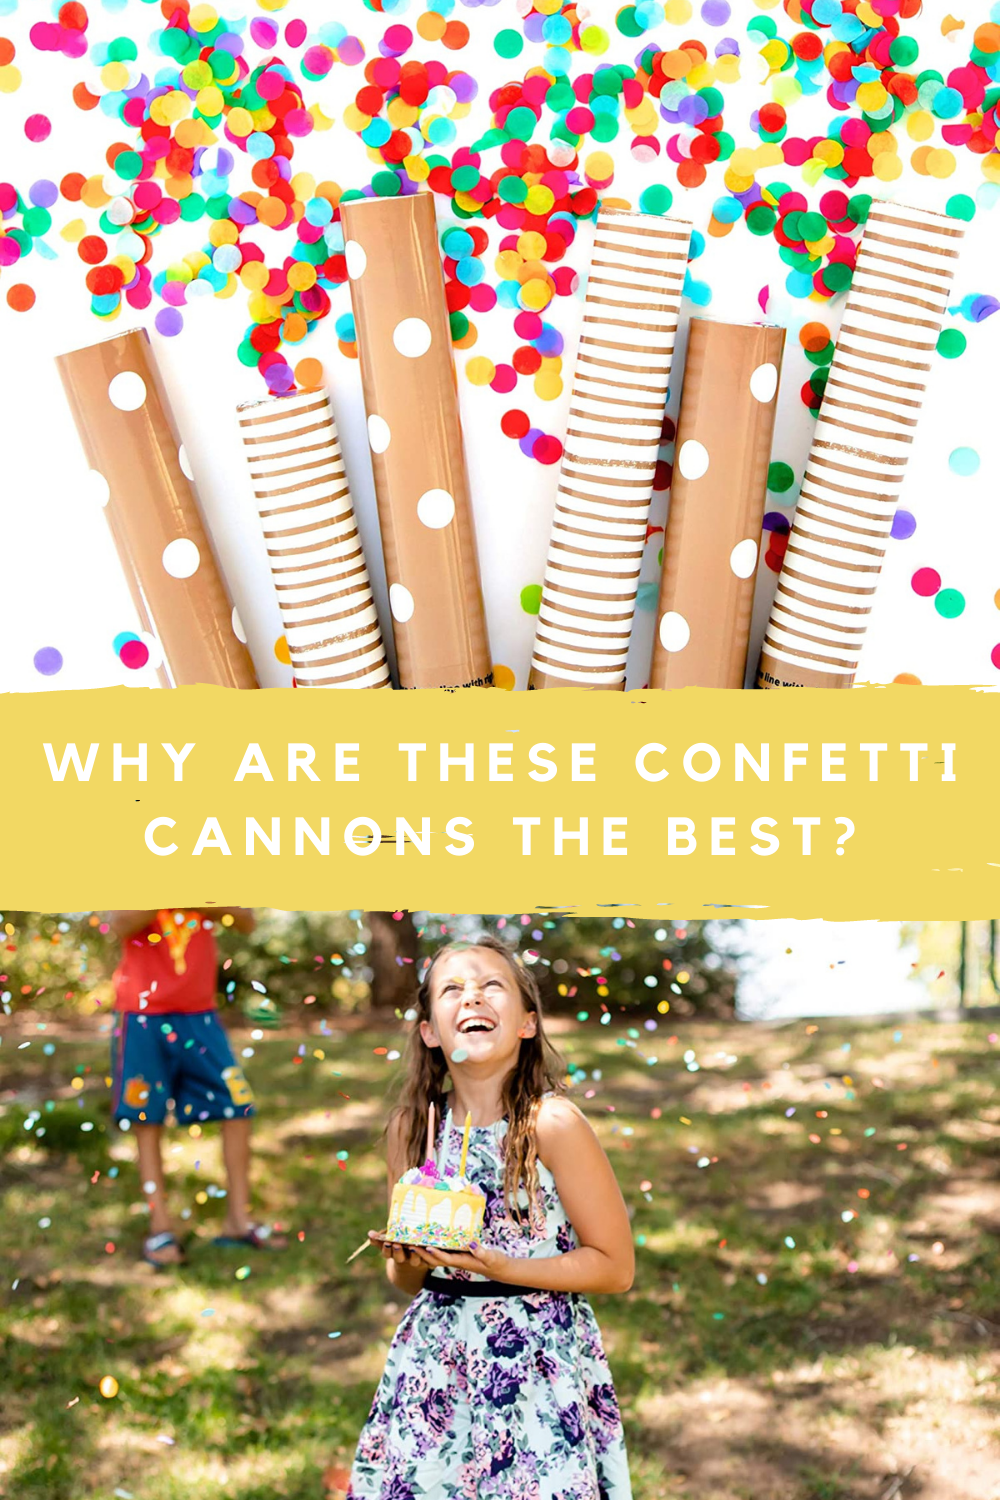 Confetti Cannon with Biodegradable Confetti Safe For Use Outdoors